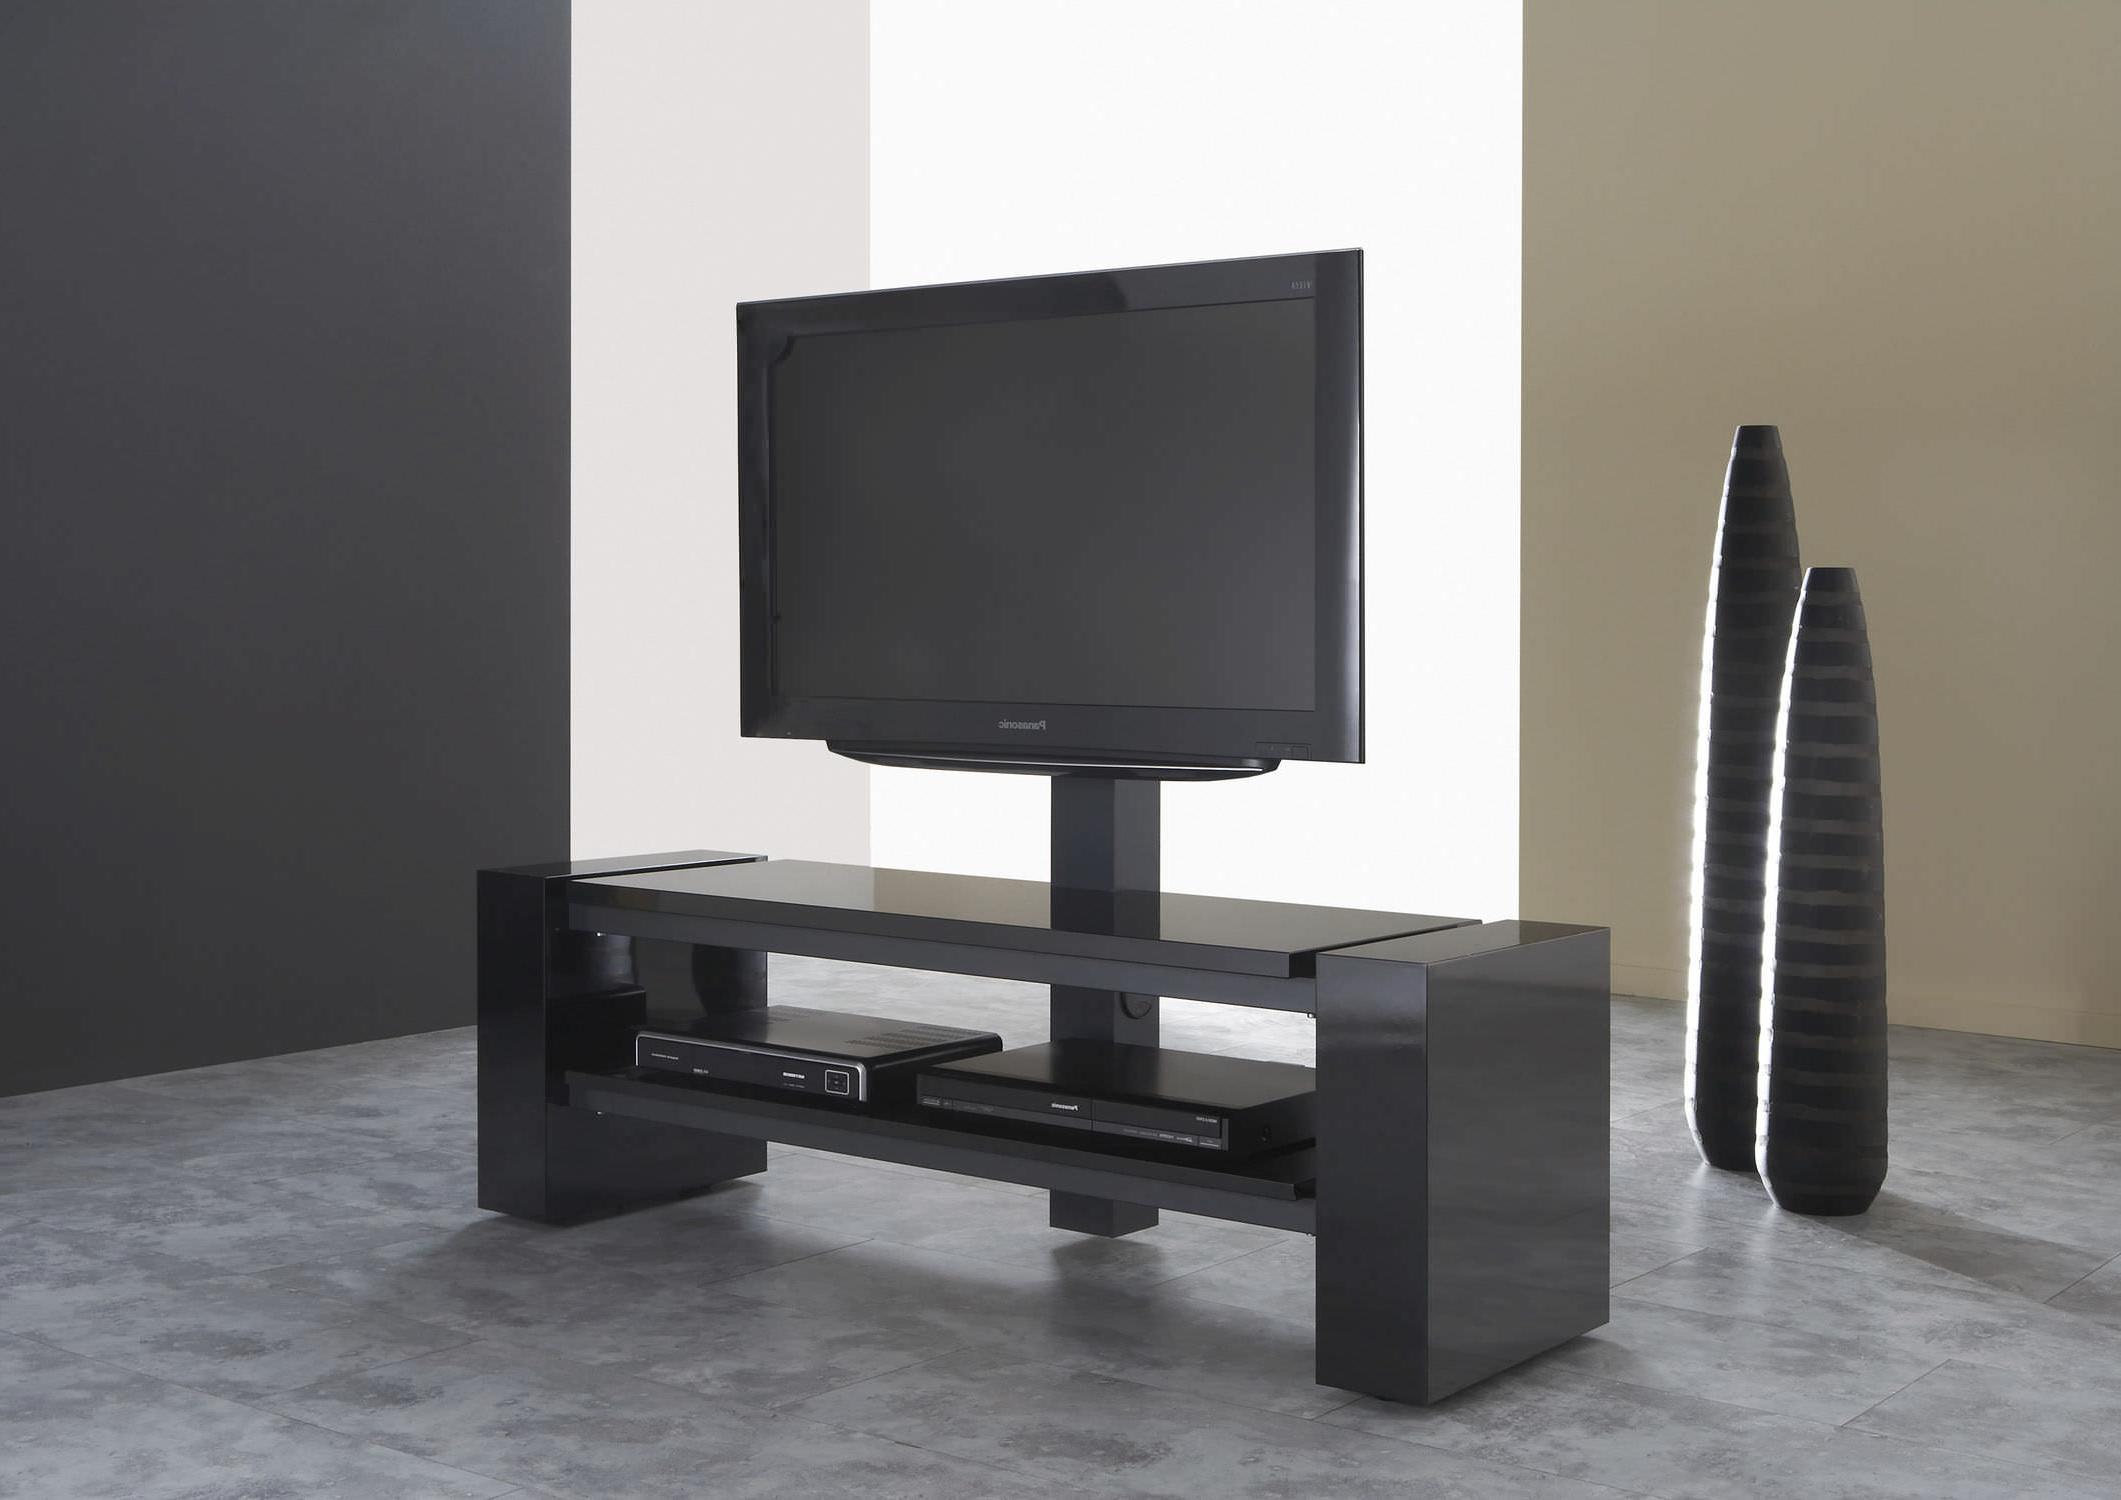 2018 Contemporary Tv Cabinets For Flat Screens Intended For Contemporary Tv Cabinet / With Screen Lift / Wooden / Lacquered Wood (Gallery 20 of 20)